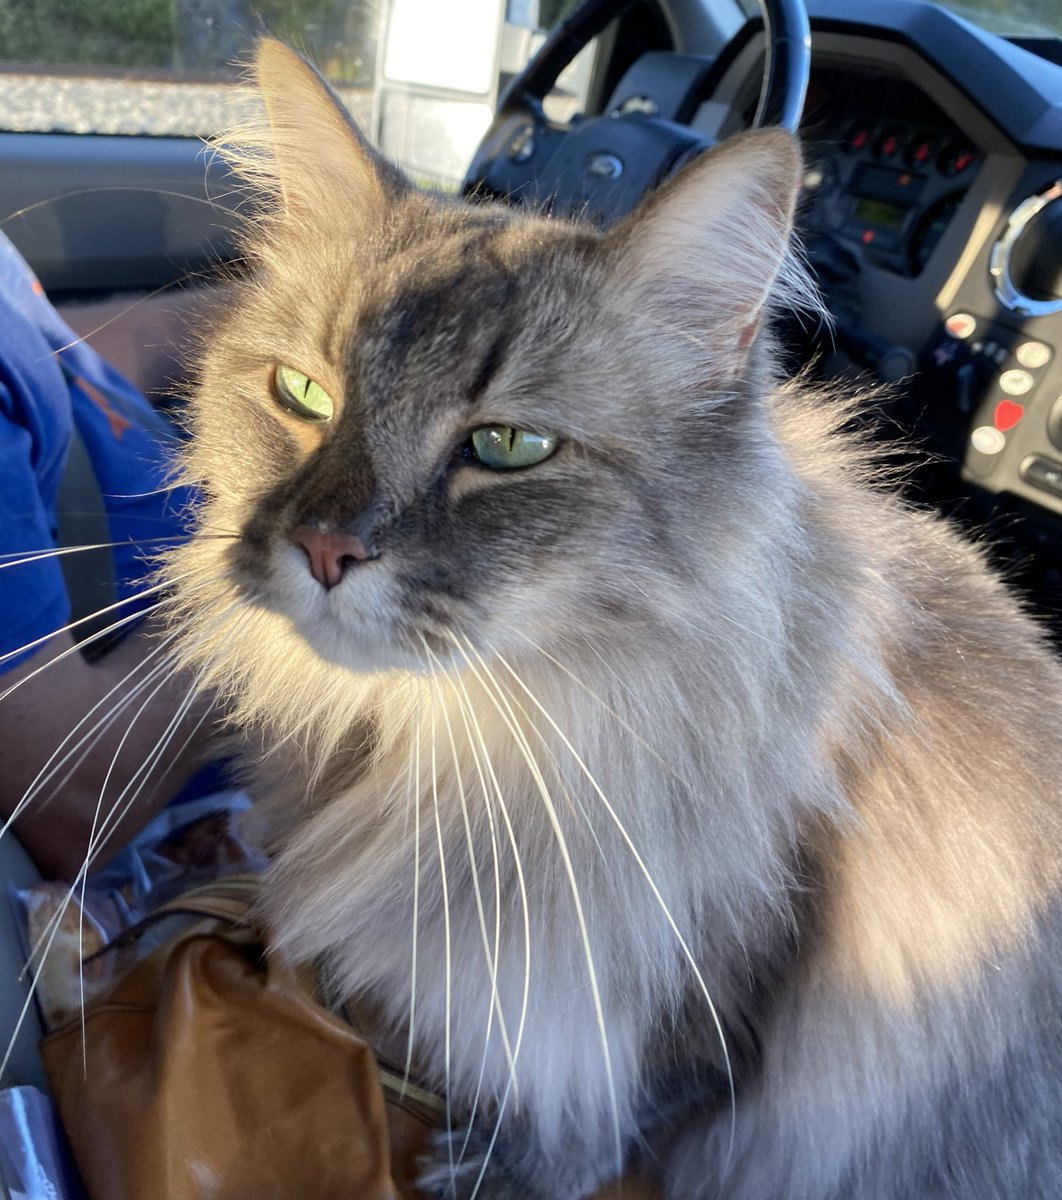 Anyone else love traveling in their hooman's vehicle?  I love it!  6 hour drive to our cabin for #LaborDayWeekend. Happy #Caturday everyone! 😻🐾😸 https://t.co/IWUXz8jaWv